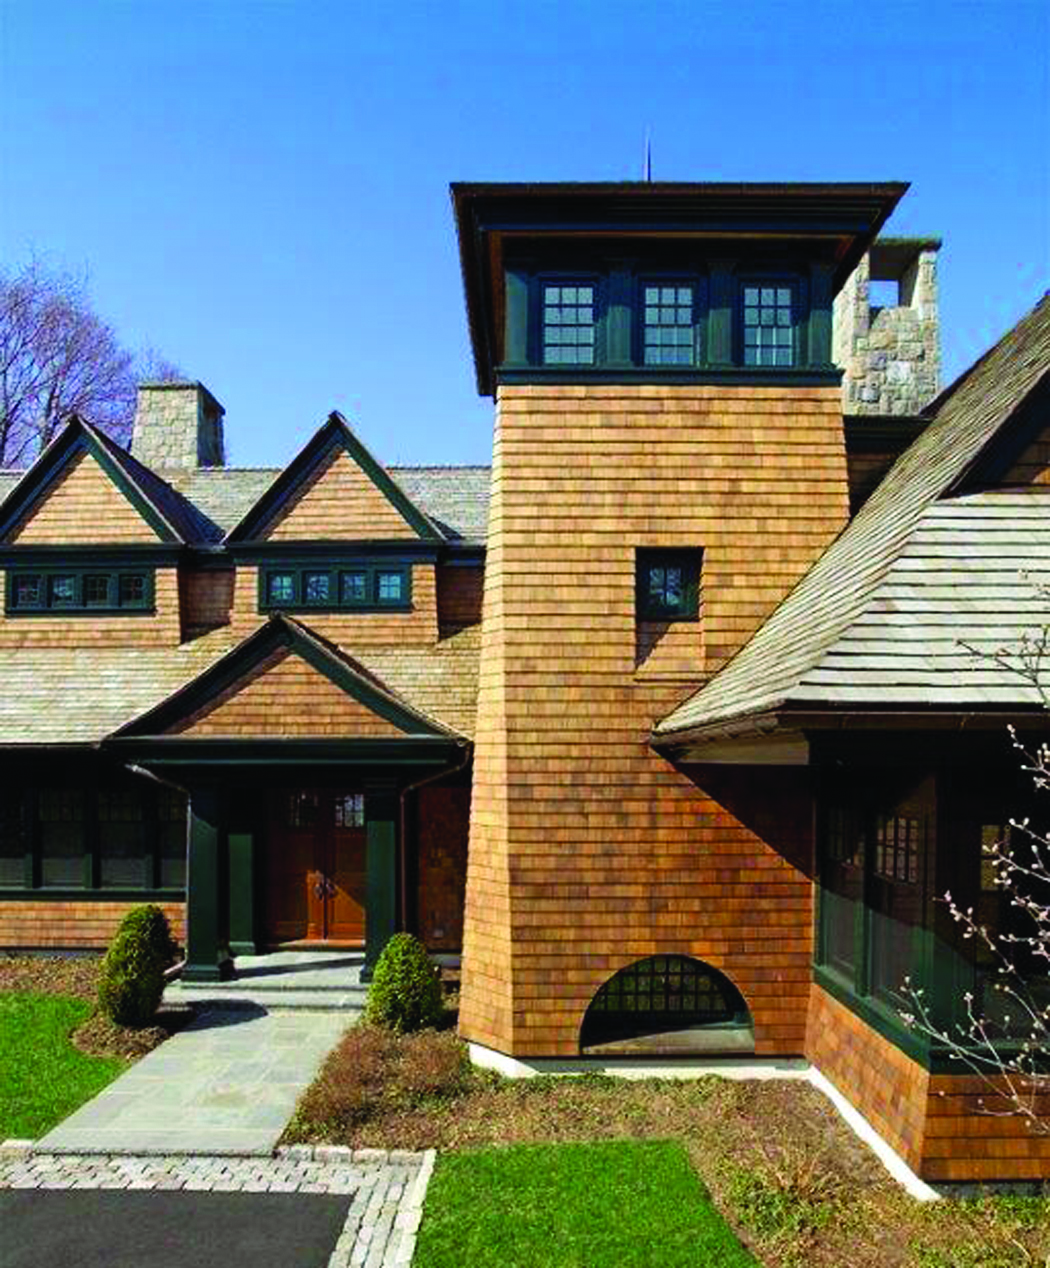 Towered-Shingle-Style-Old-Greenwich-Davenport